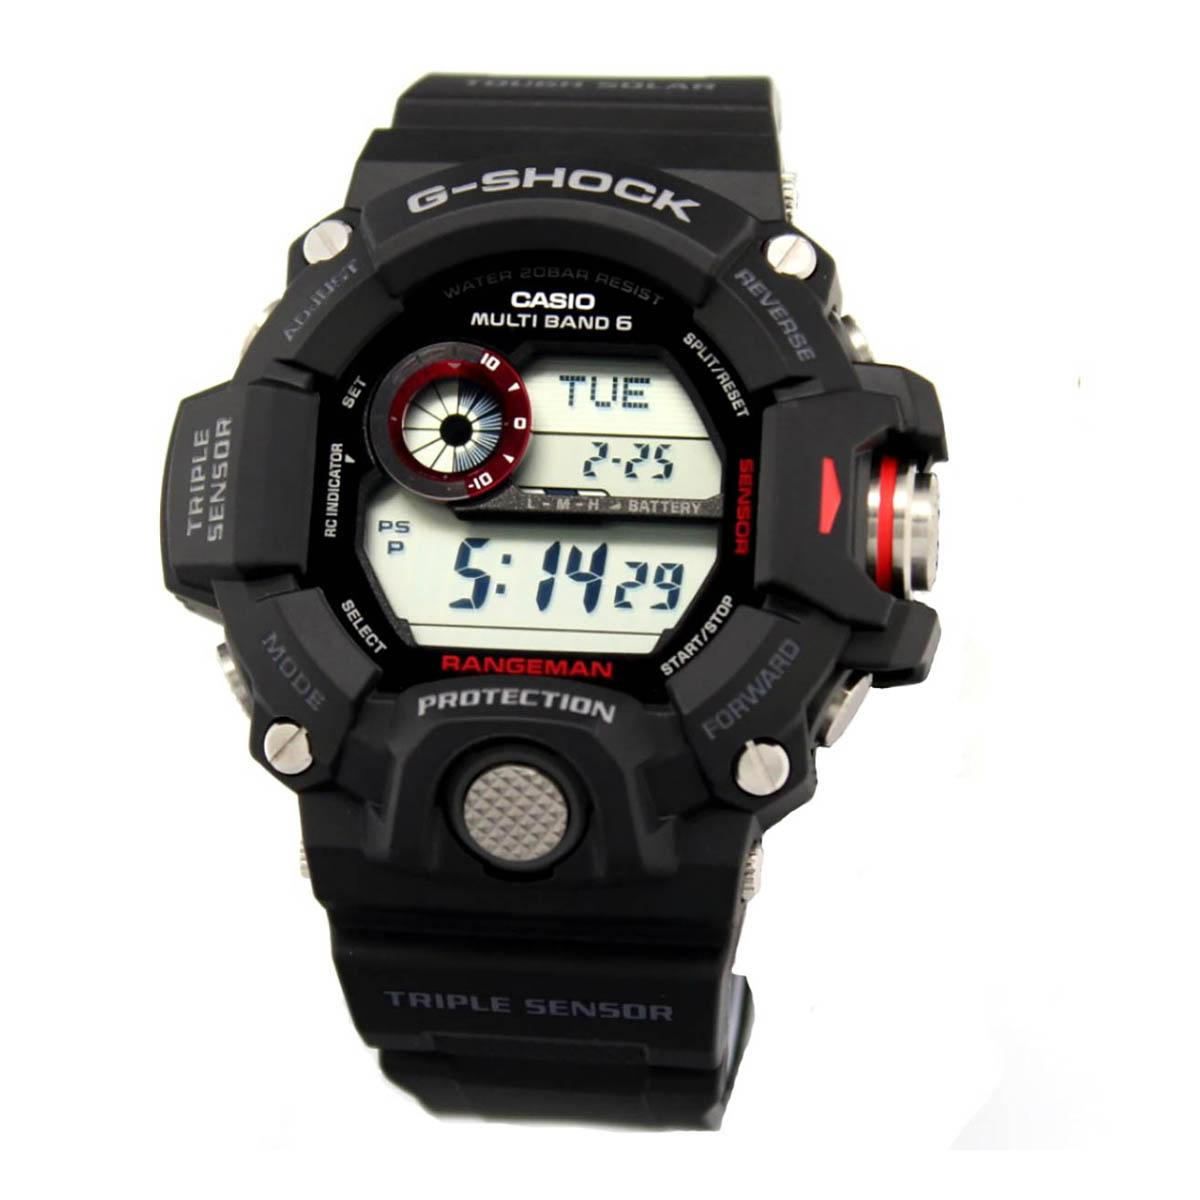 Buy Cheap Casio Watch G Shock Professional Black Resin Case Resin Strap Mens Gw 9400 1D